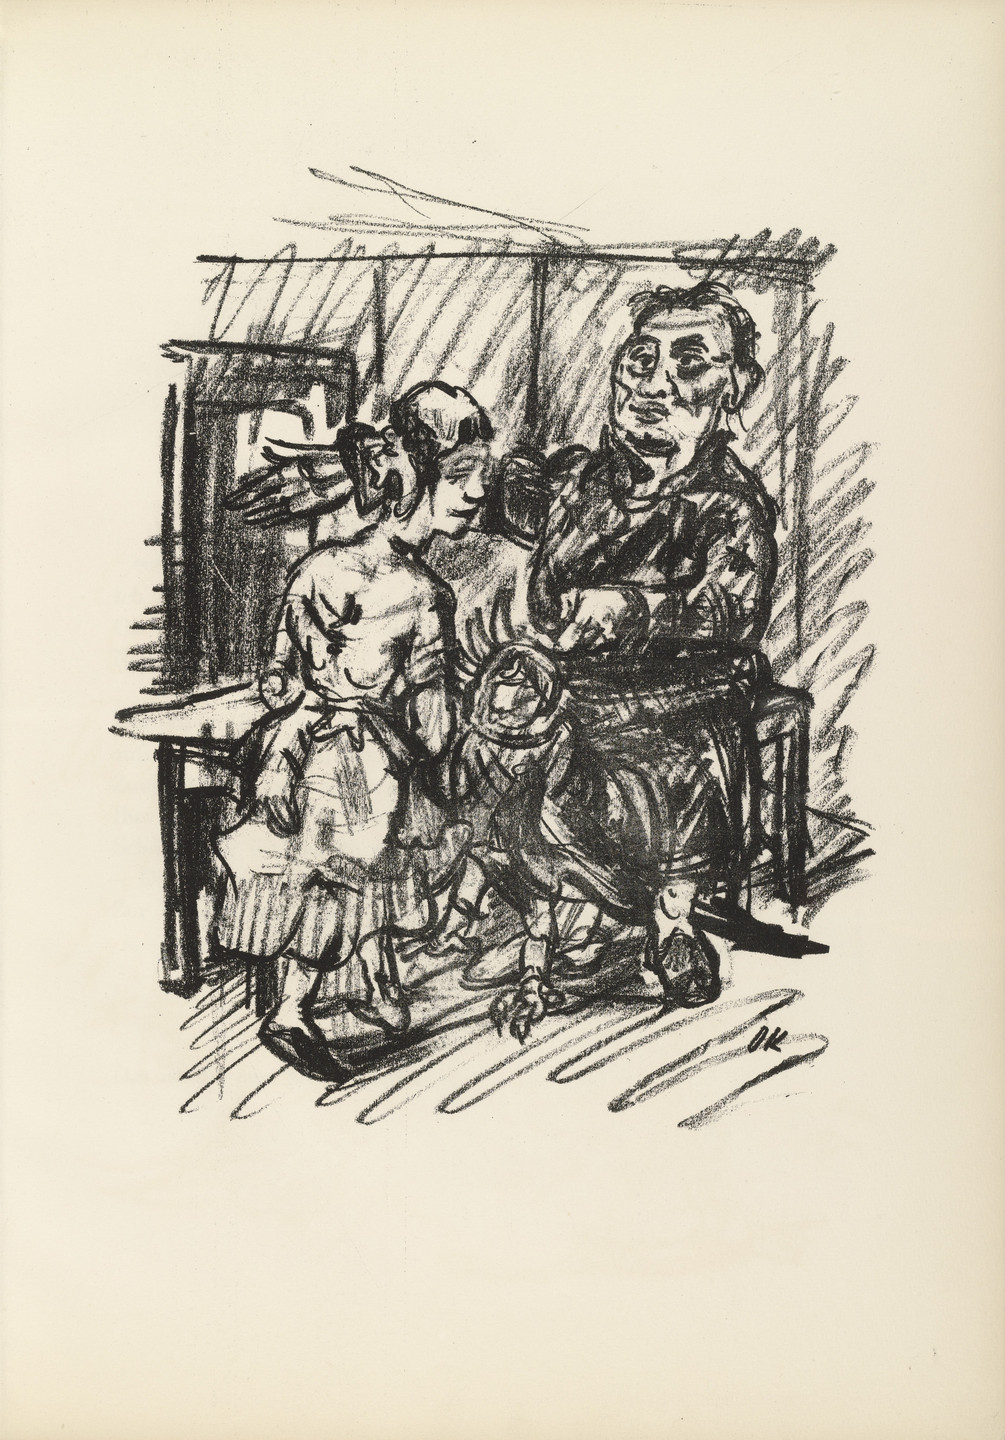 Oskar Kokoschka. Job, Chambermaid and Parrot (Hiob, Kammerjungfrau und Papagei) (plate, page 7) from Hiob (Job). 1916–17, published 1917